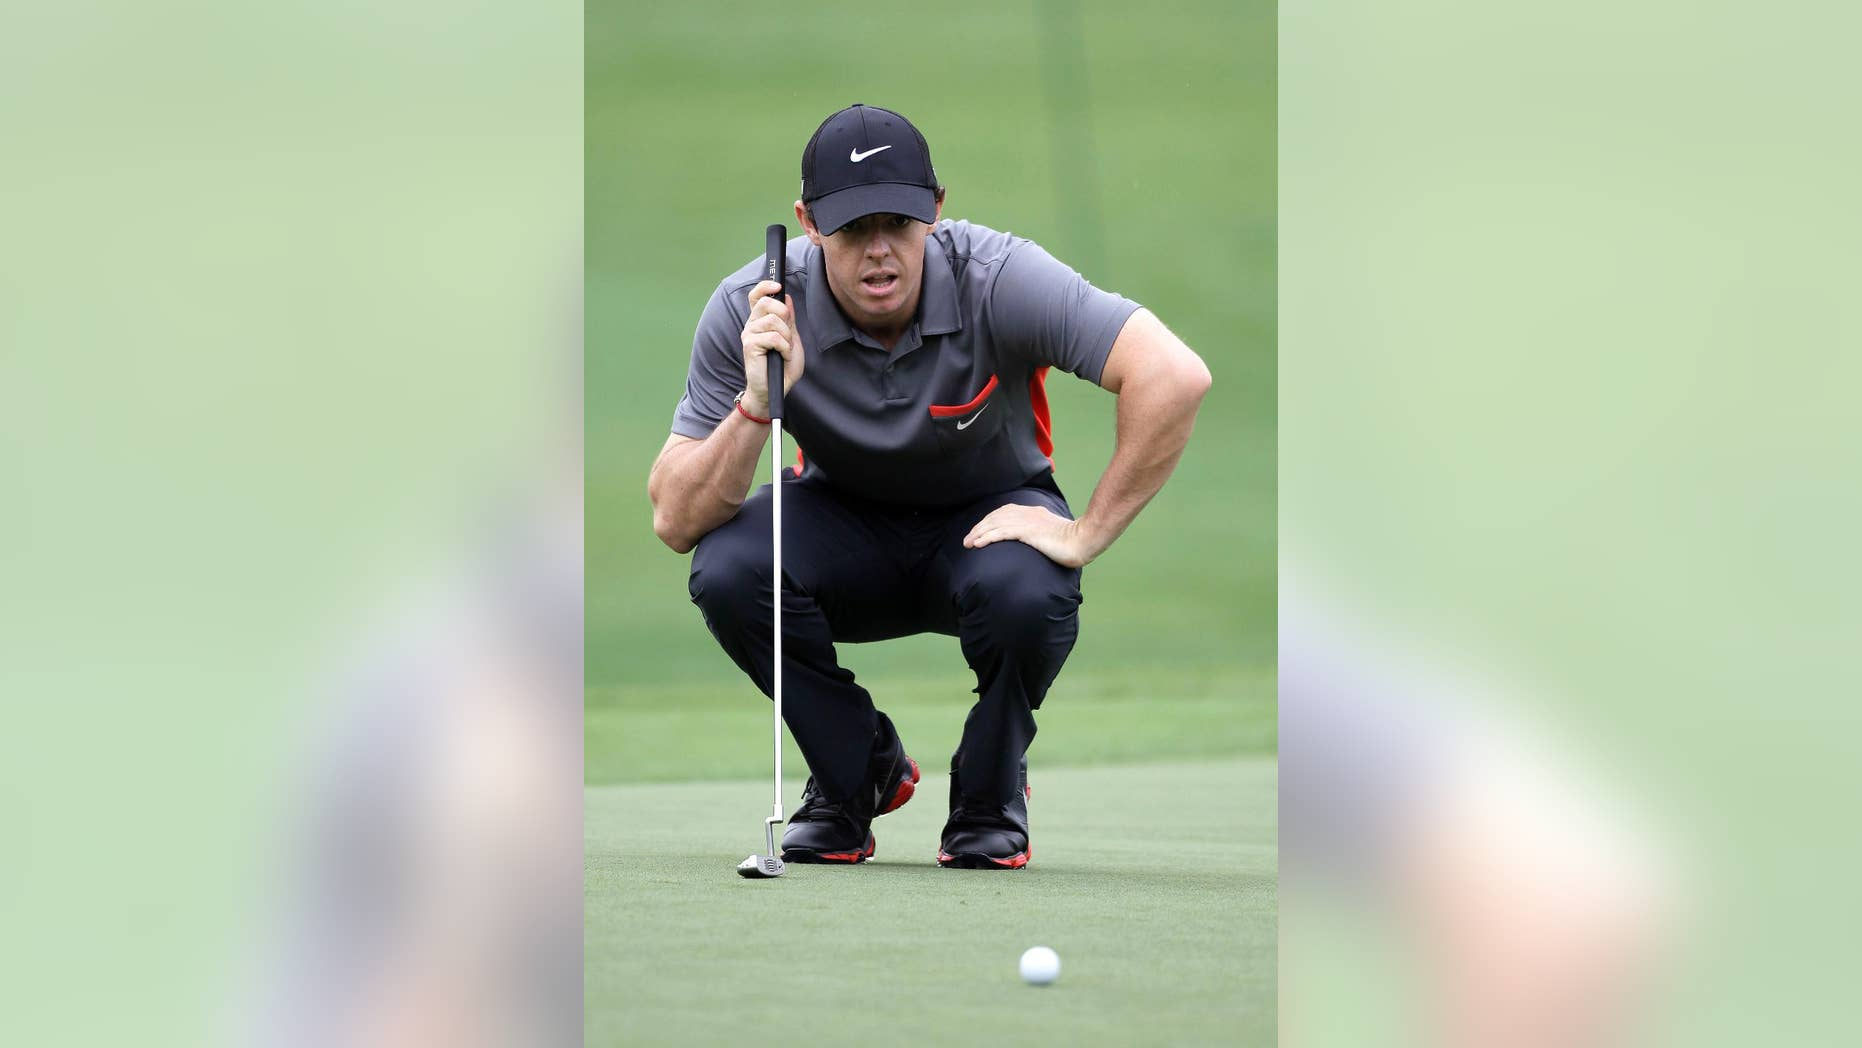 Rory McIlroy eyes his putt on the 18th green during the pro-am of the Wells Fargo Championship golf tournament at Quail Hollow Club in Charlotte, N.C., Wednesday, April 30, 2014. (AP Photo/Bob Leverone)